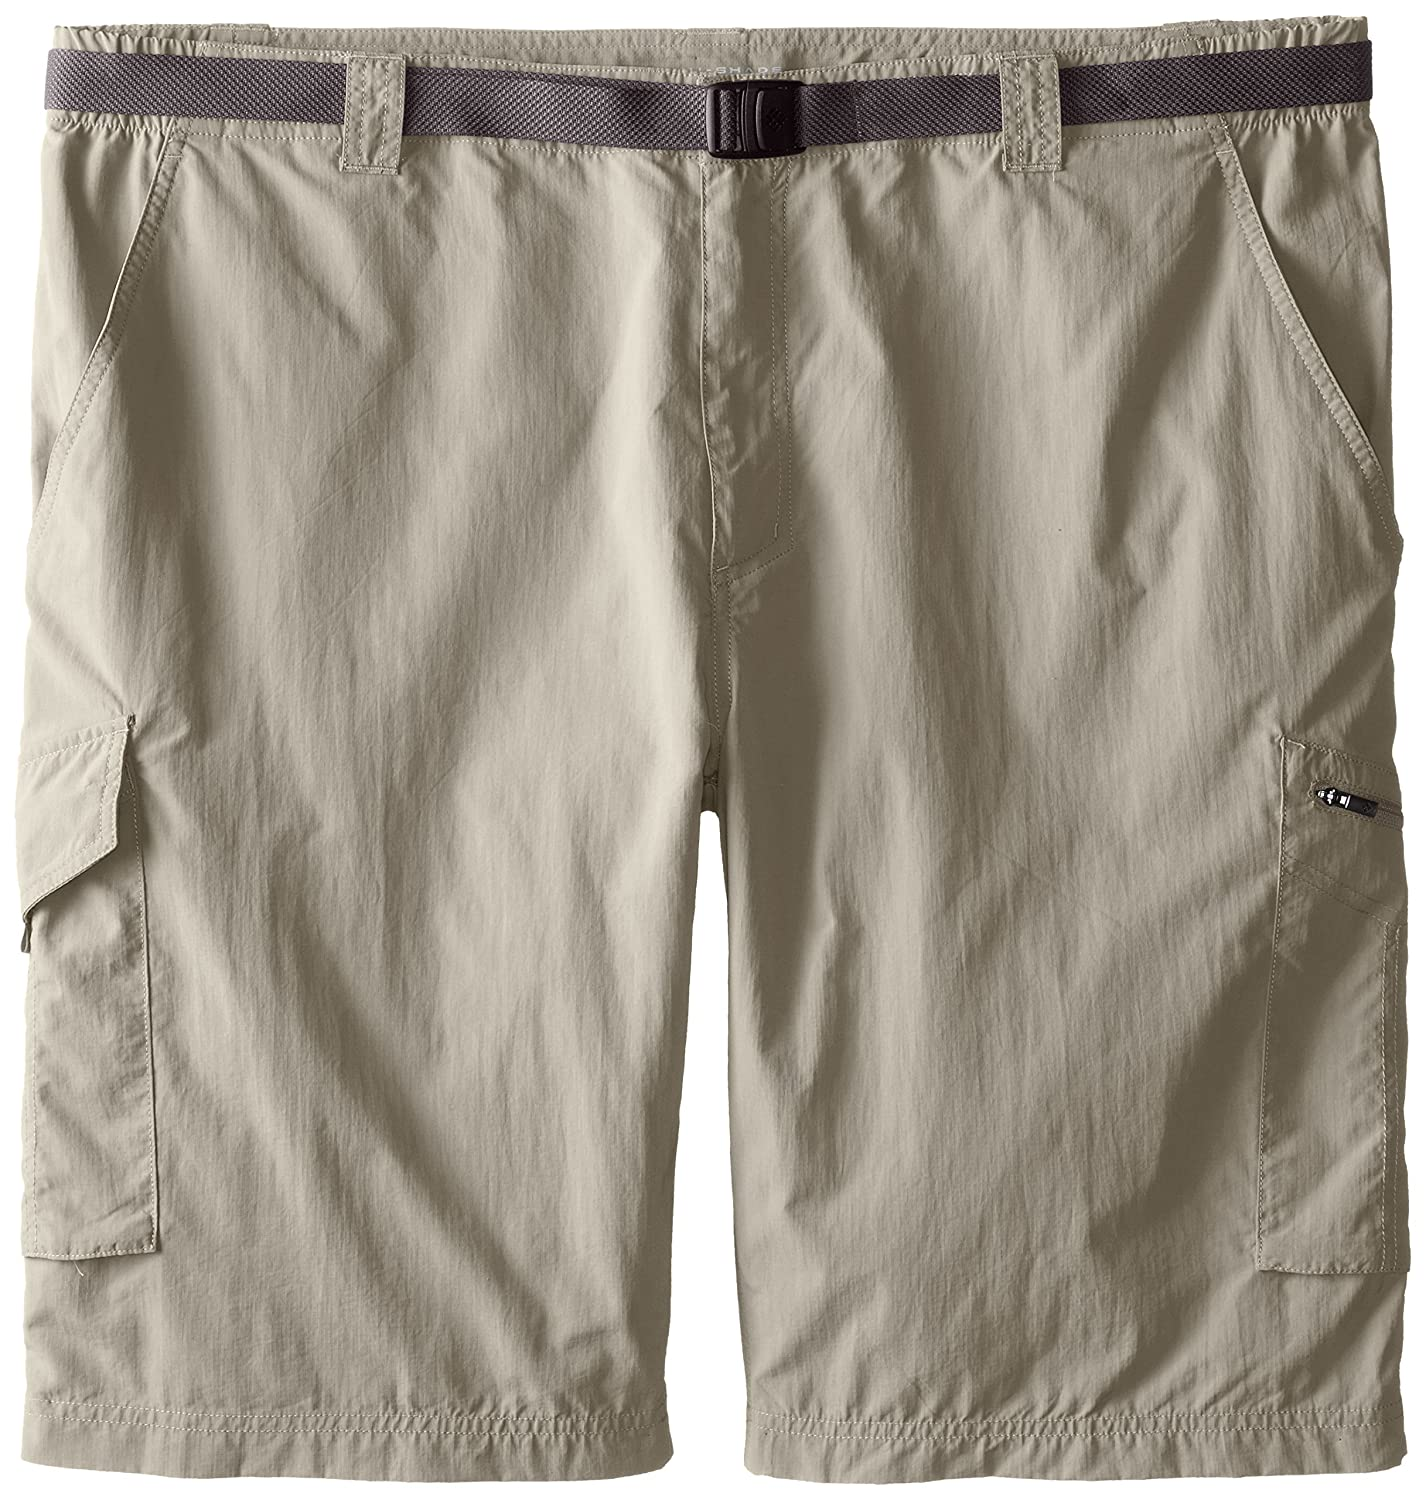 Columbia Sportswear Men's Big and Tall Silver Ridge Cargo Shorts, Tusk, 48 x 10 1441706